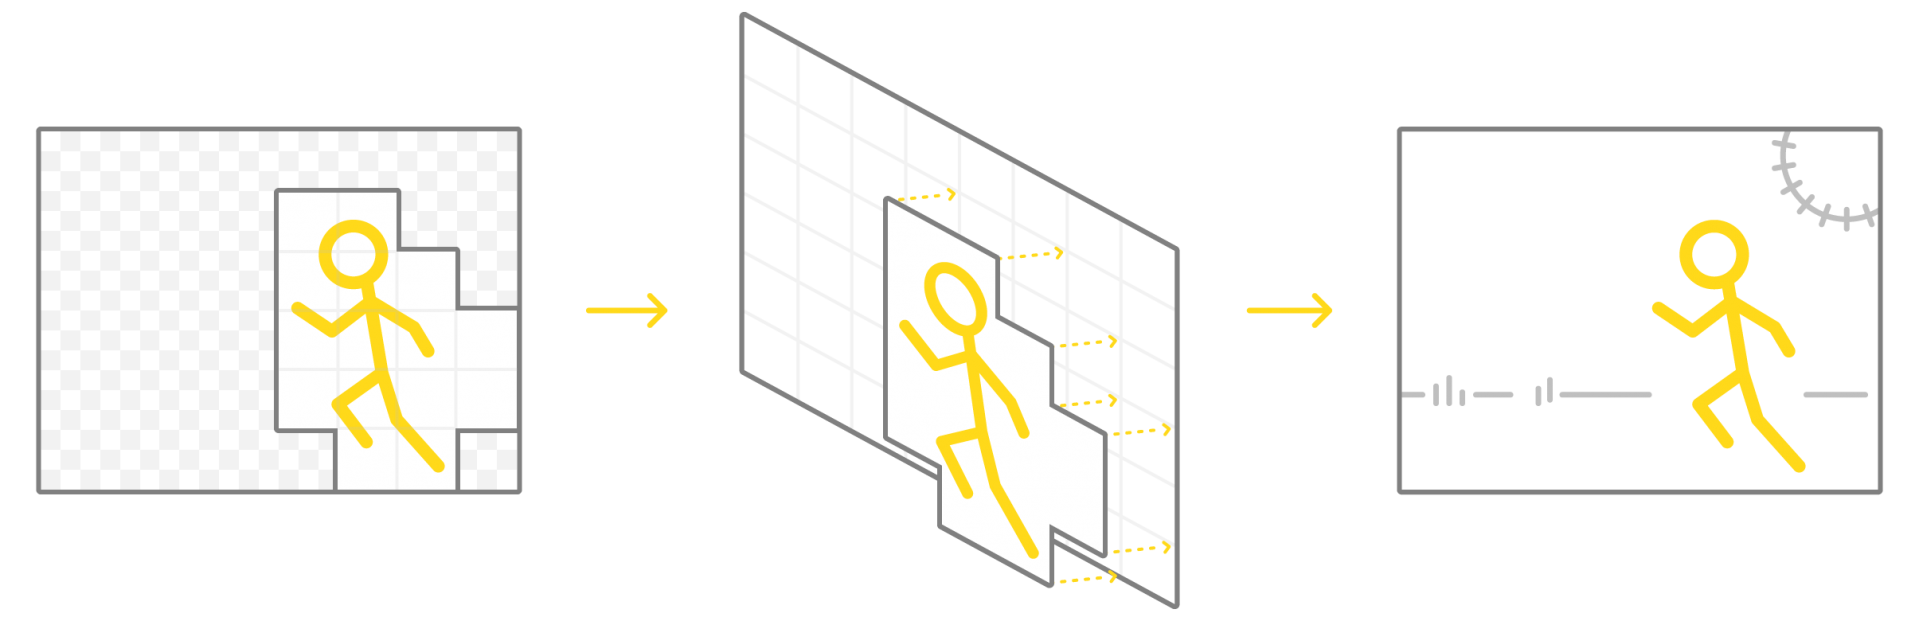 An illustration of a stick figure running. The graphic shows a portion of a video frame being assembled and then composited on top of the existing frame data.